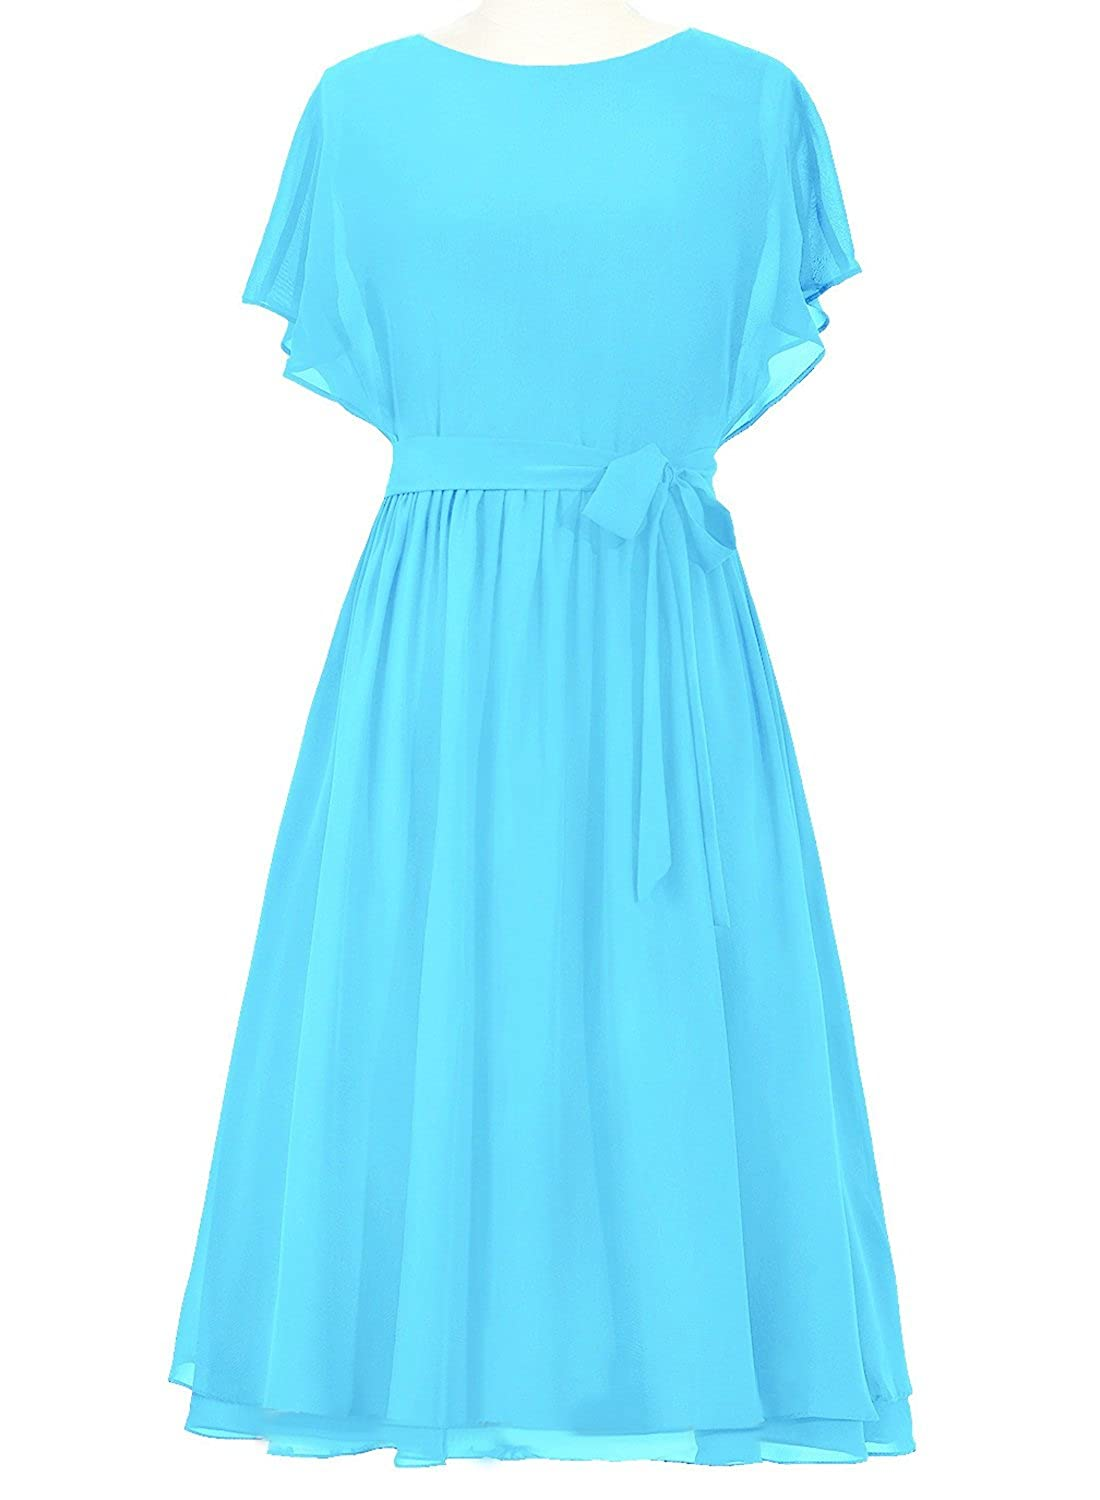 Preferhouse Mother Of The Bride Dress Plus Size Tea Length Wedding ...